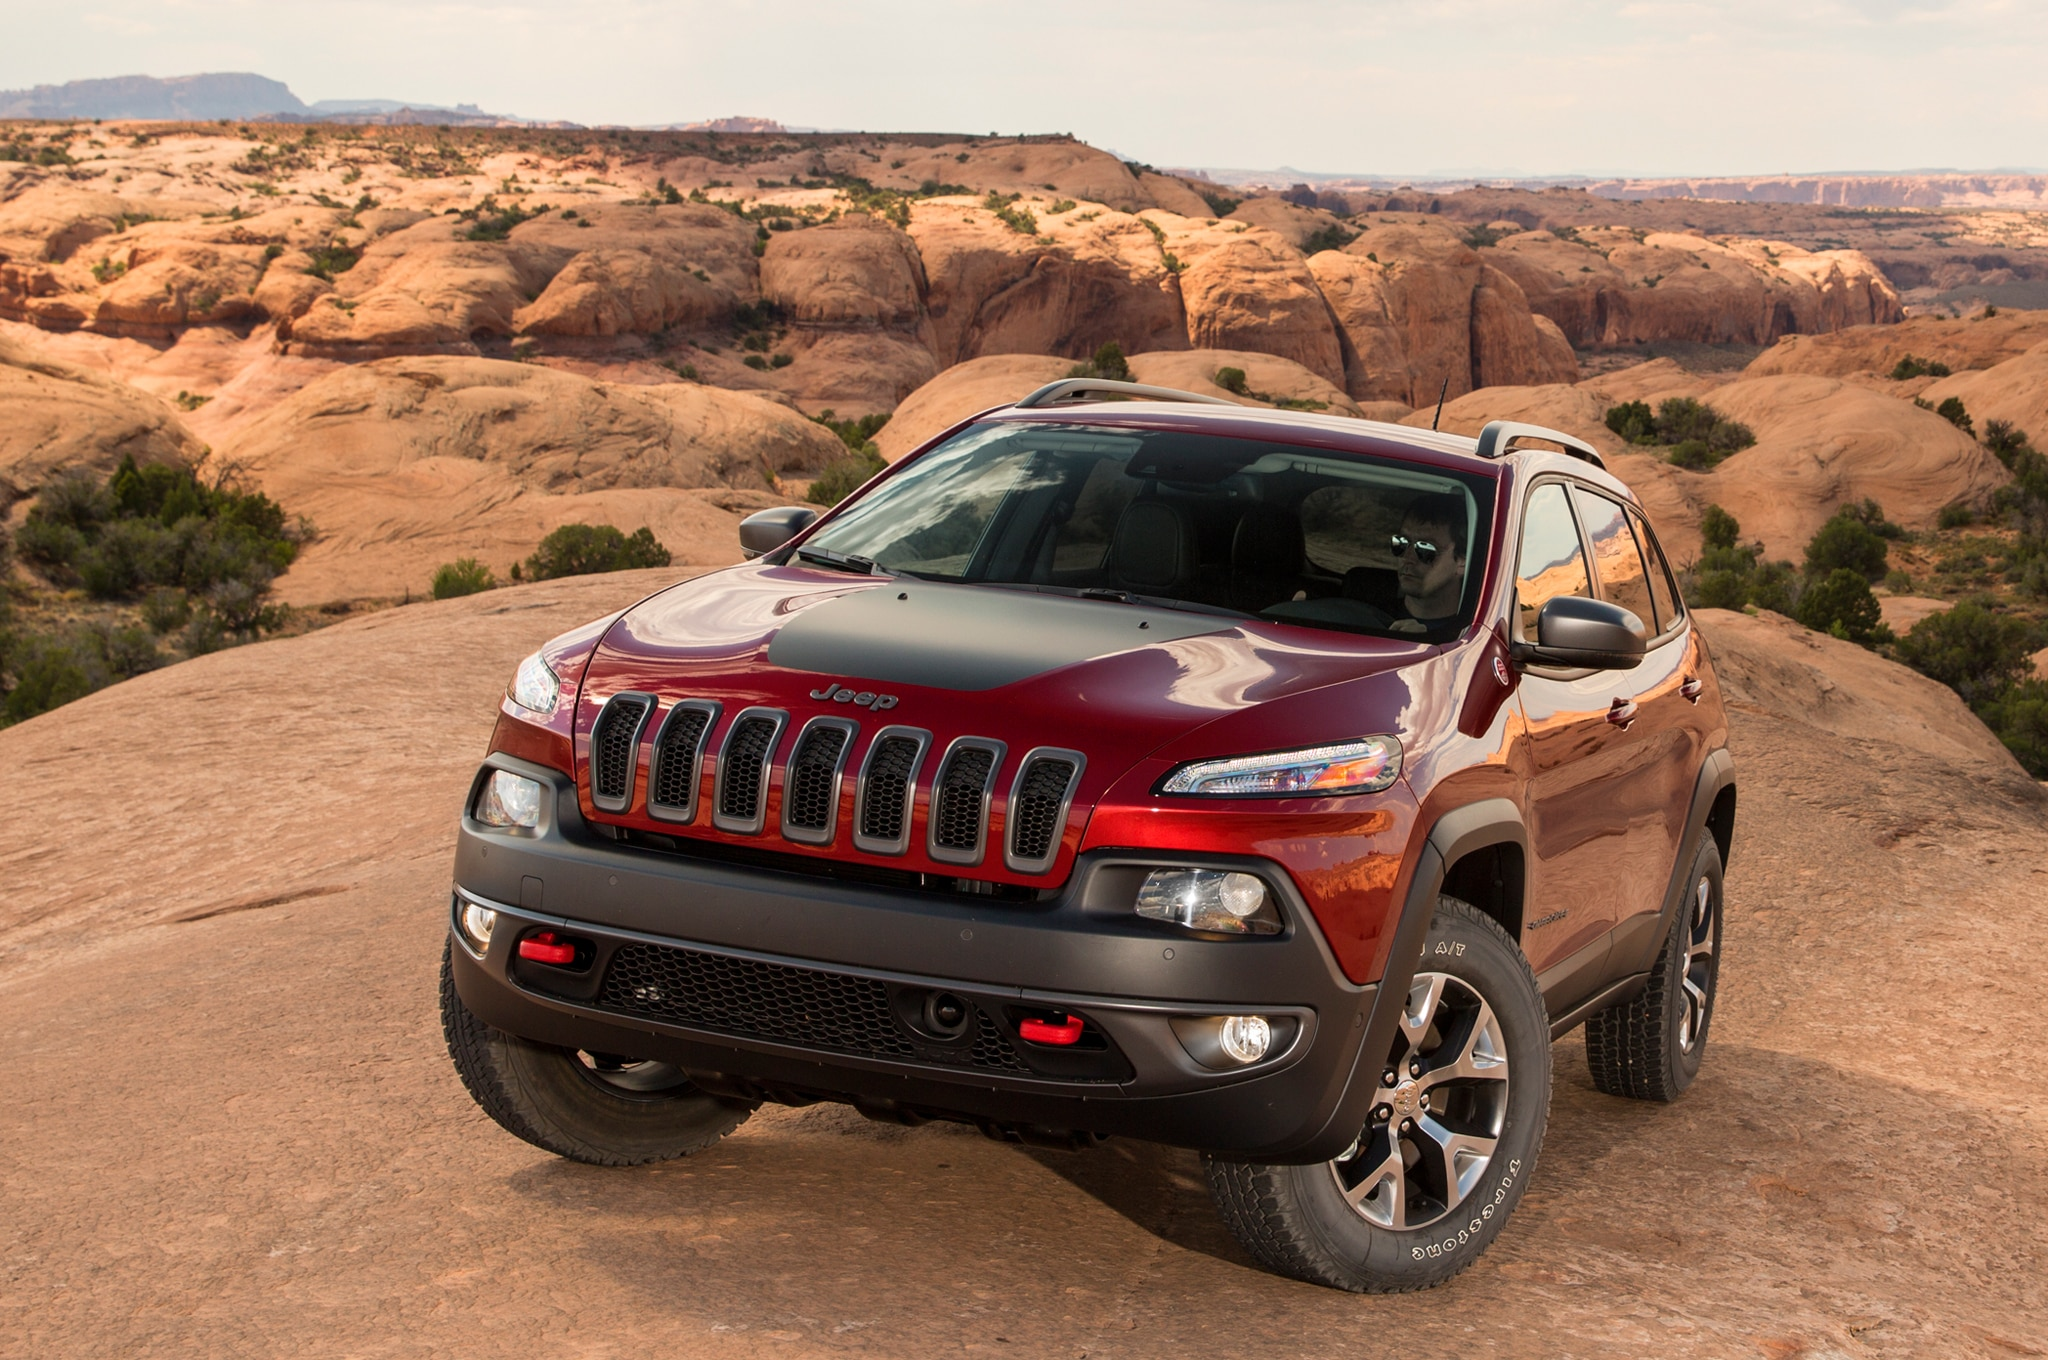 2014 Jeep Cherokee TrailHawk front three quarters view 02